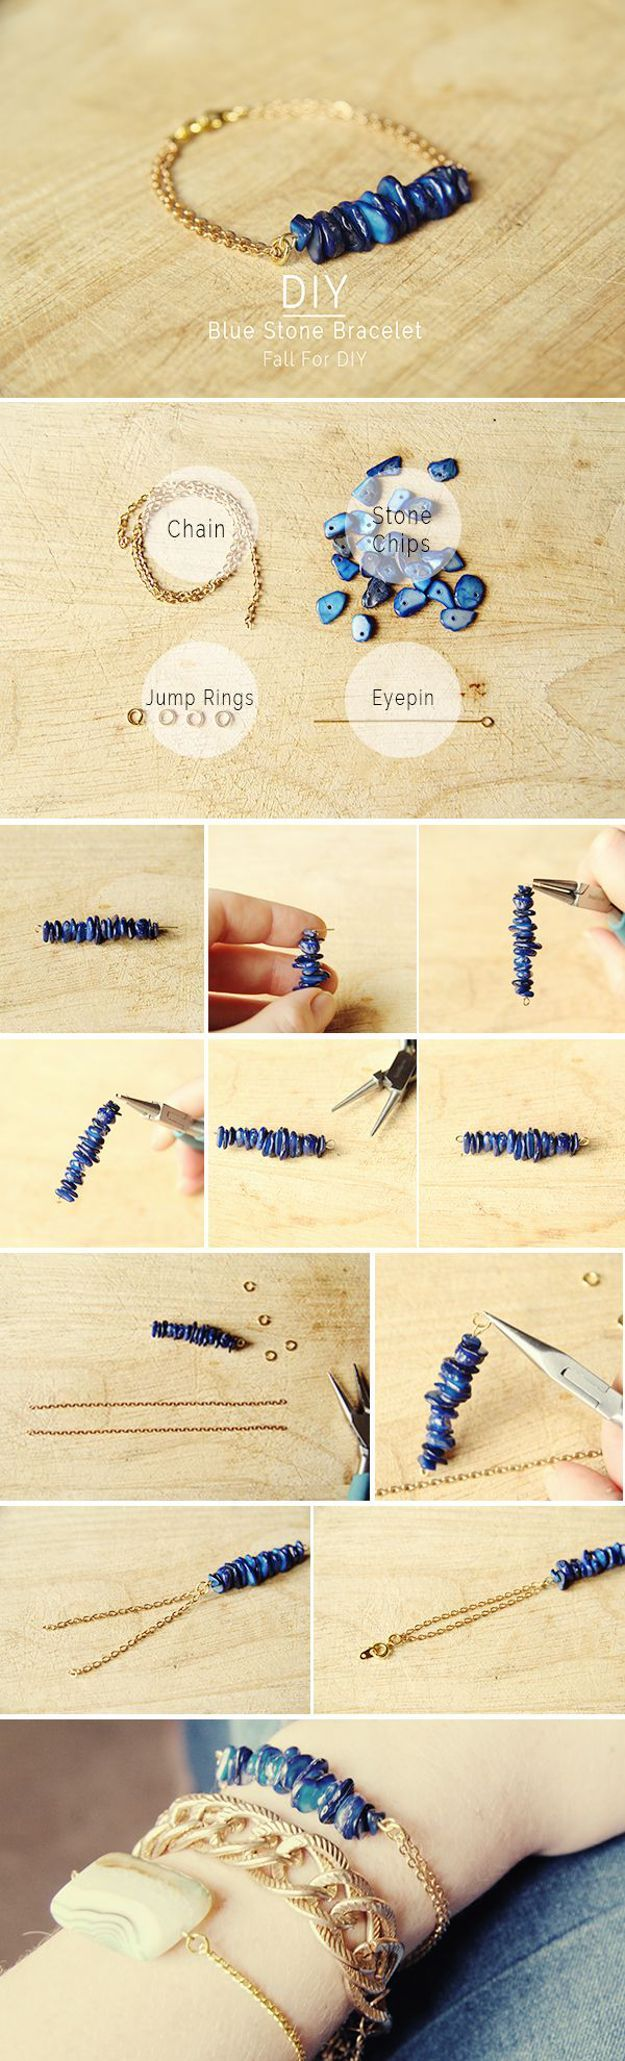 Delicate DIY Friendship Bracelets | Want to put you craft skills to use? Try making this delicate DIY friendship bracelet. #DiyReady diyready.com